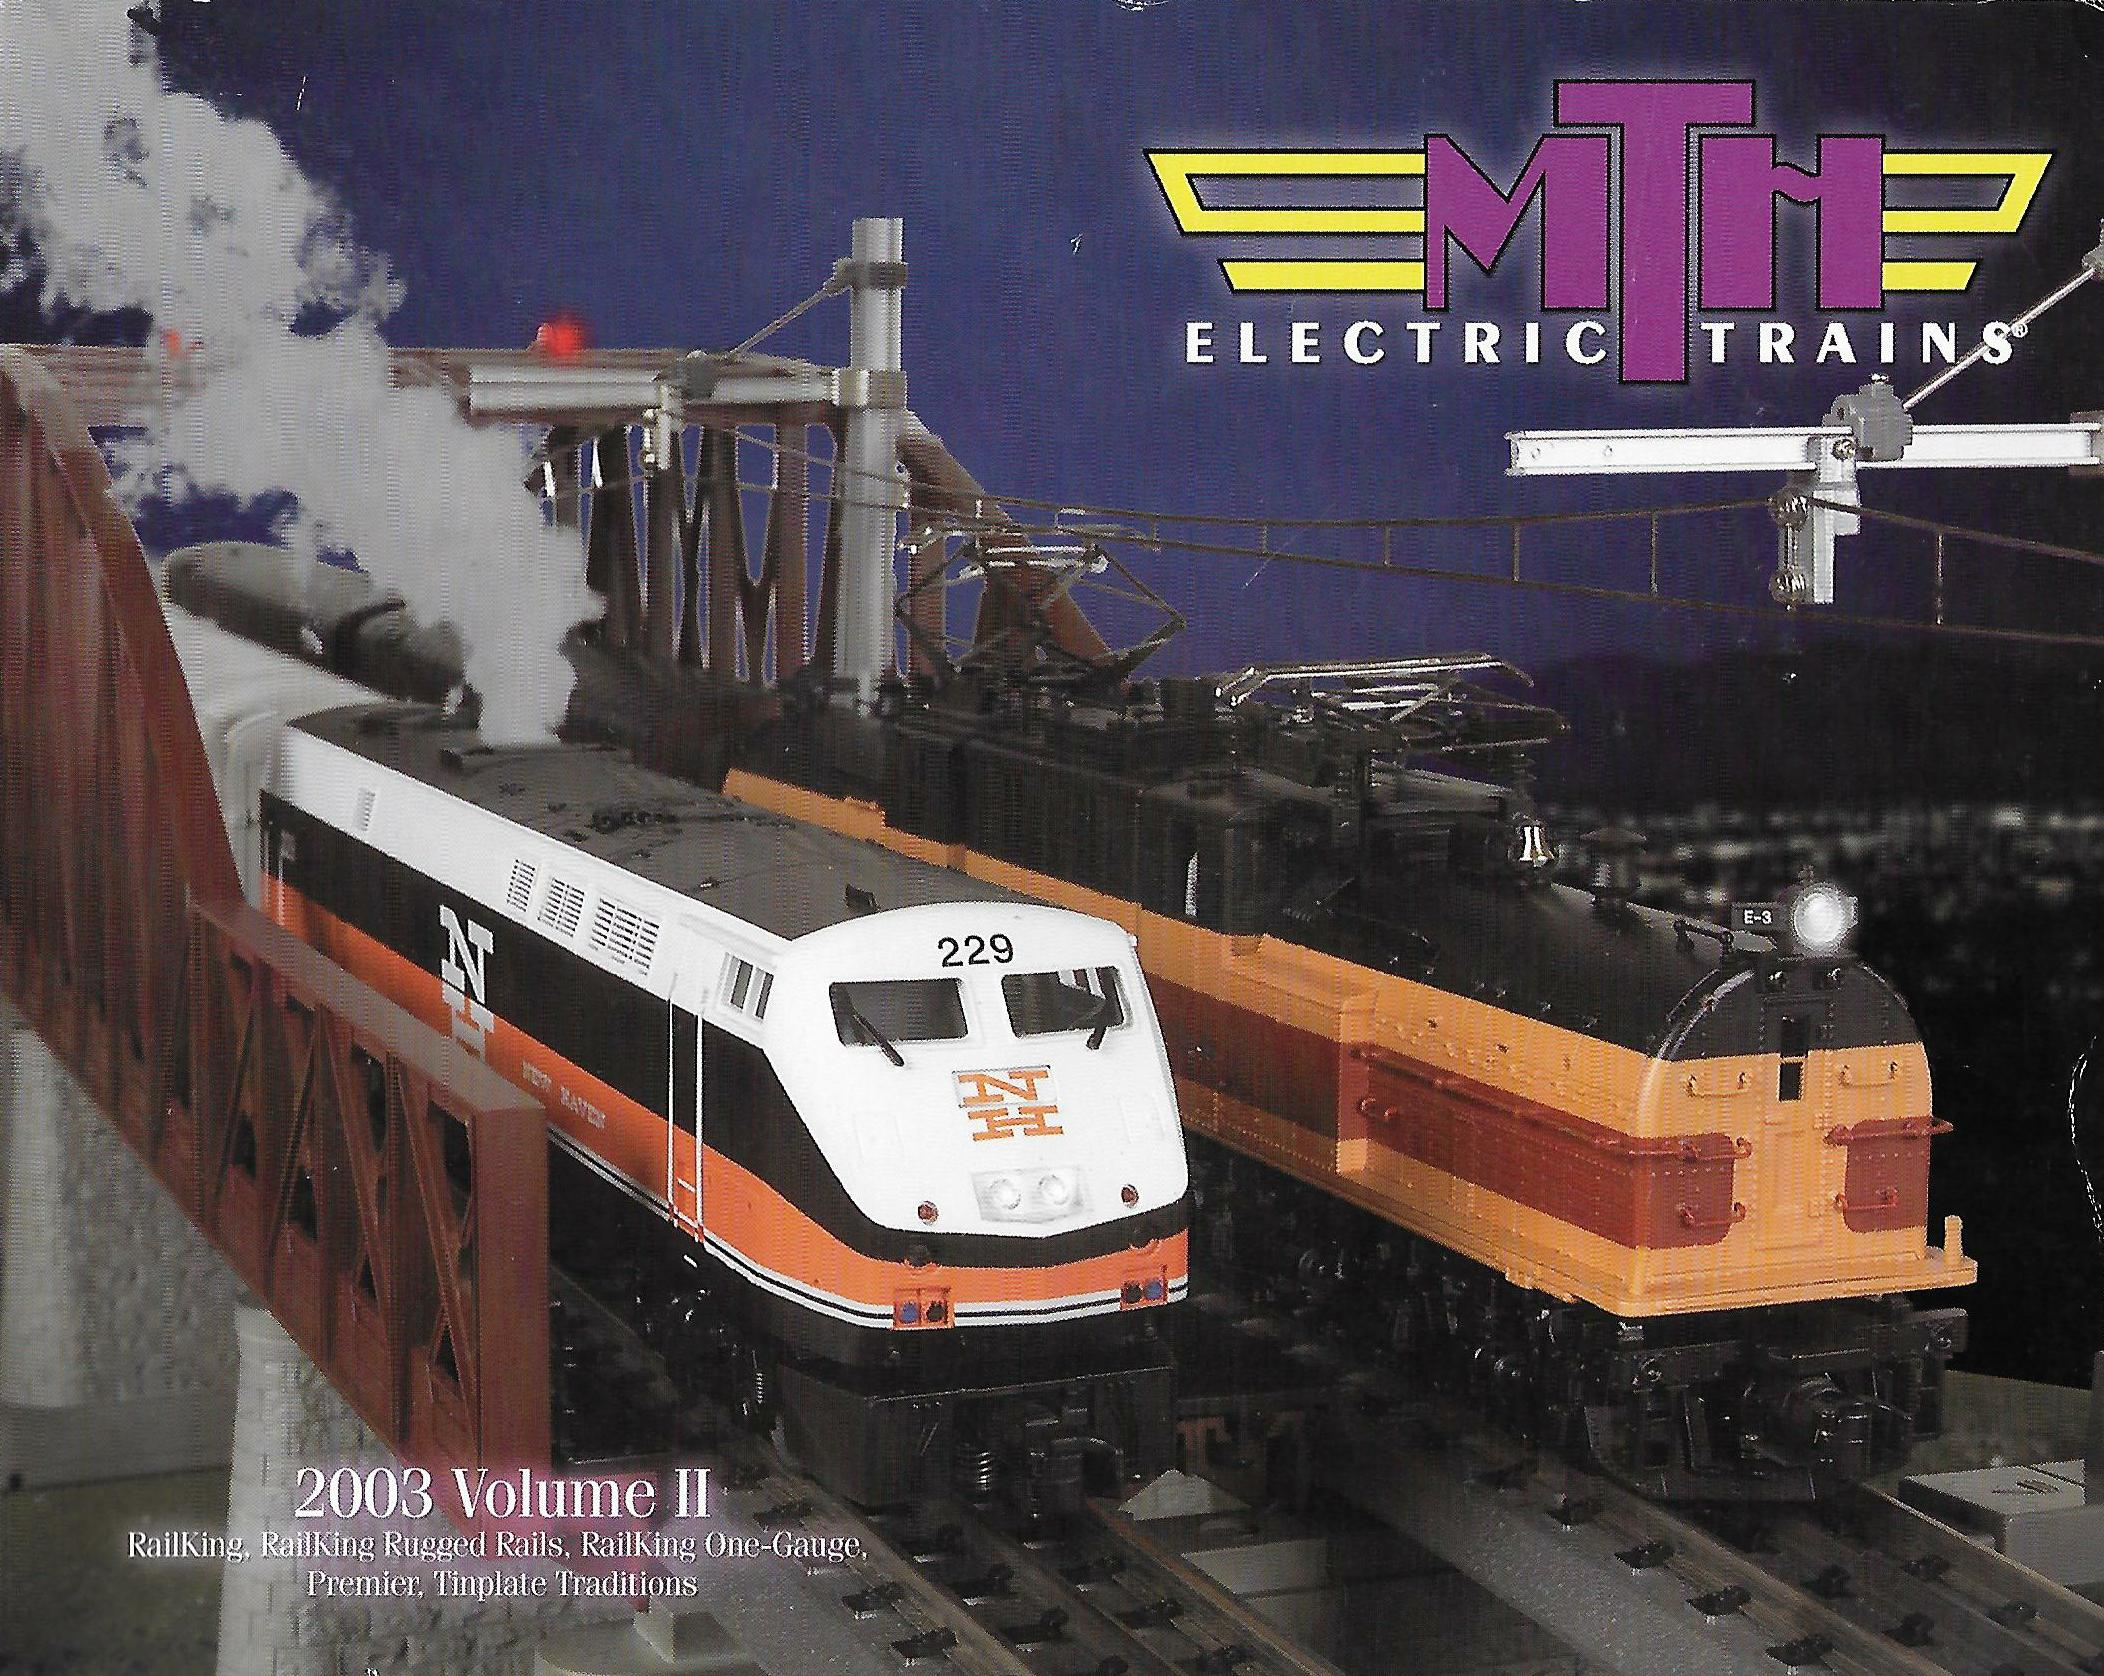 MTH 2003 Volume II Catalog image